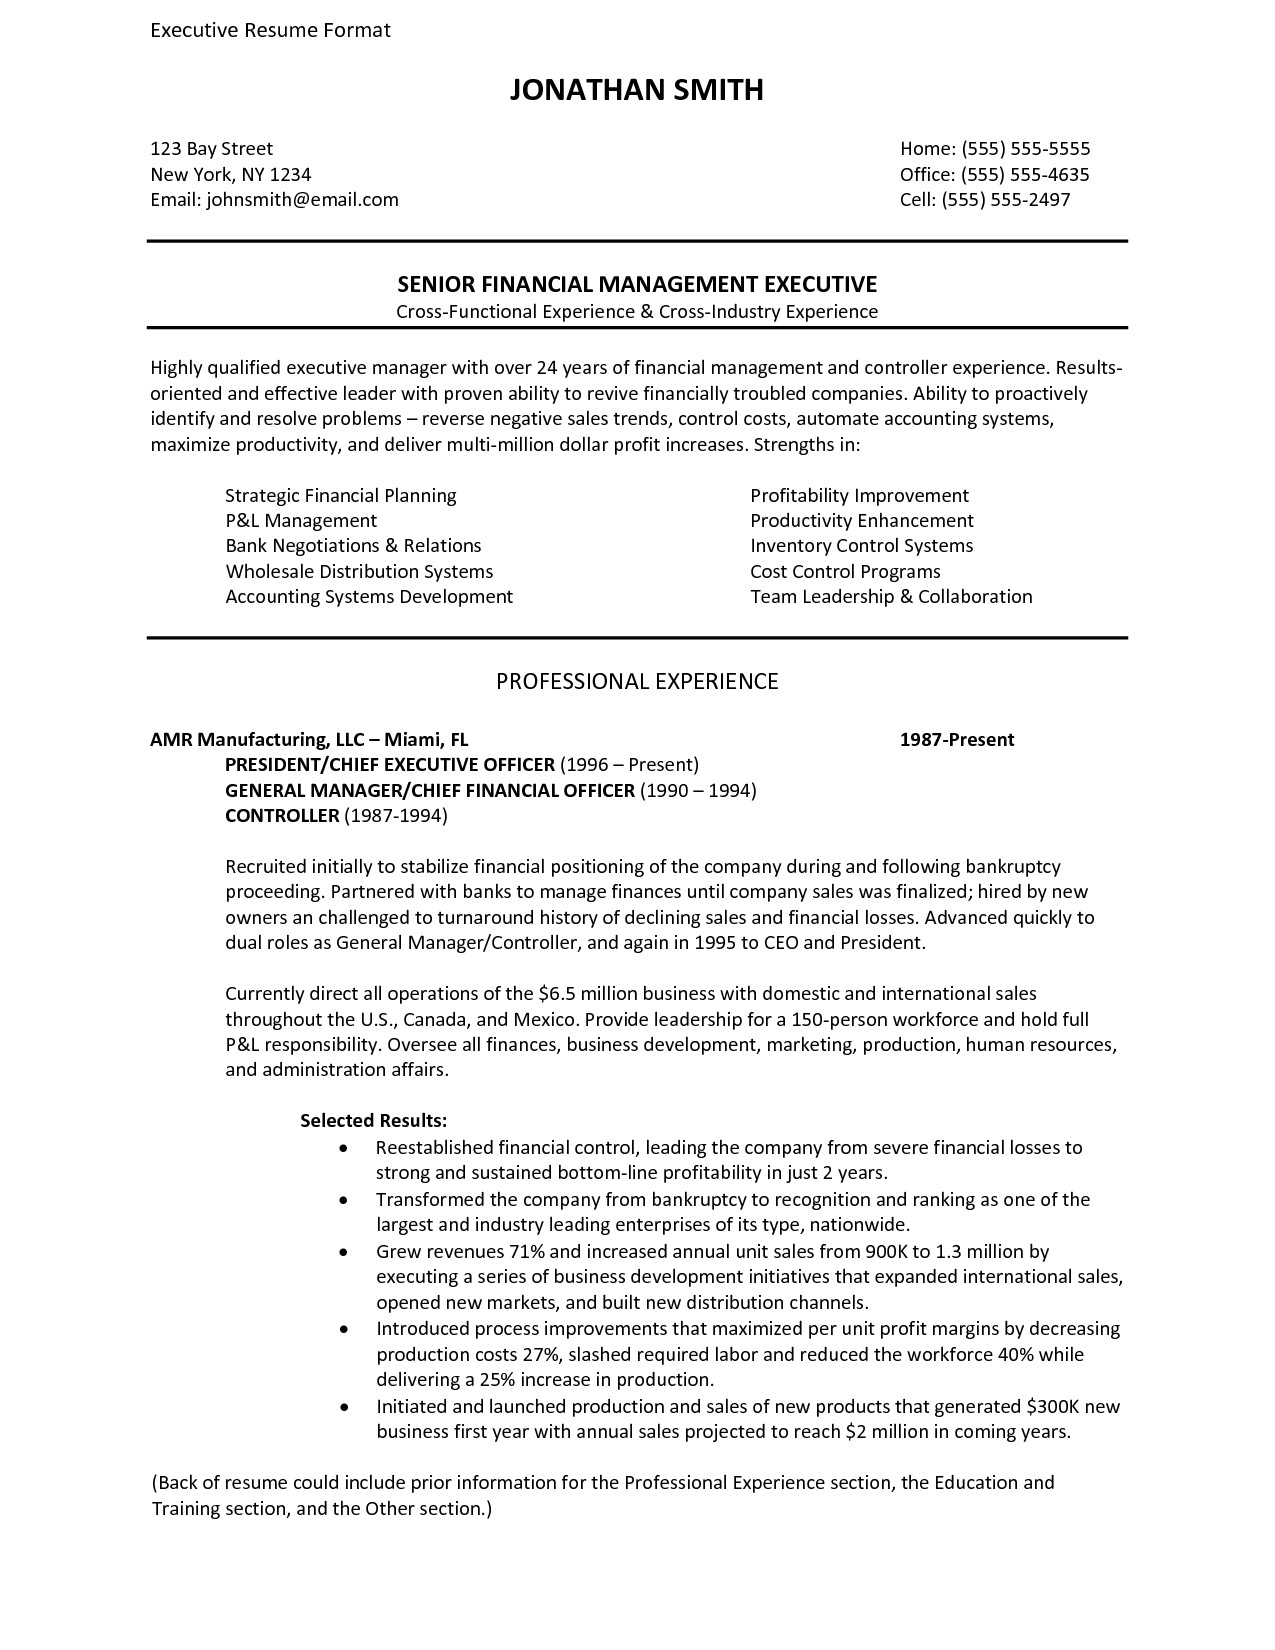 Executive Style Resume Template Resume Template Executive Sample Resume Cover Letter format